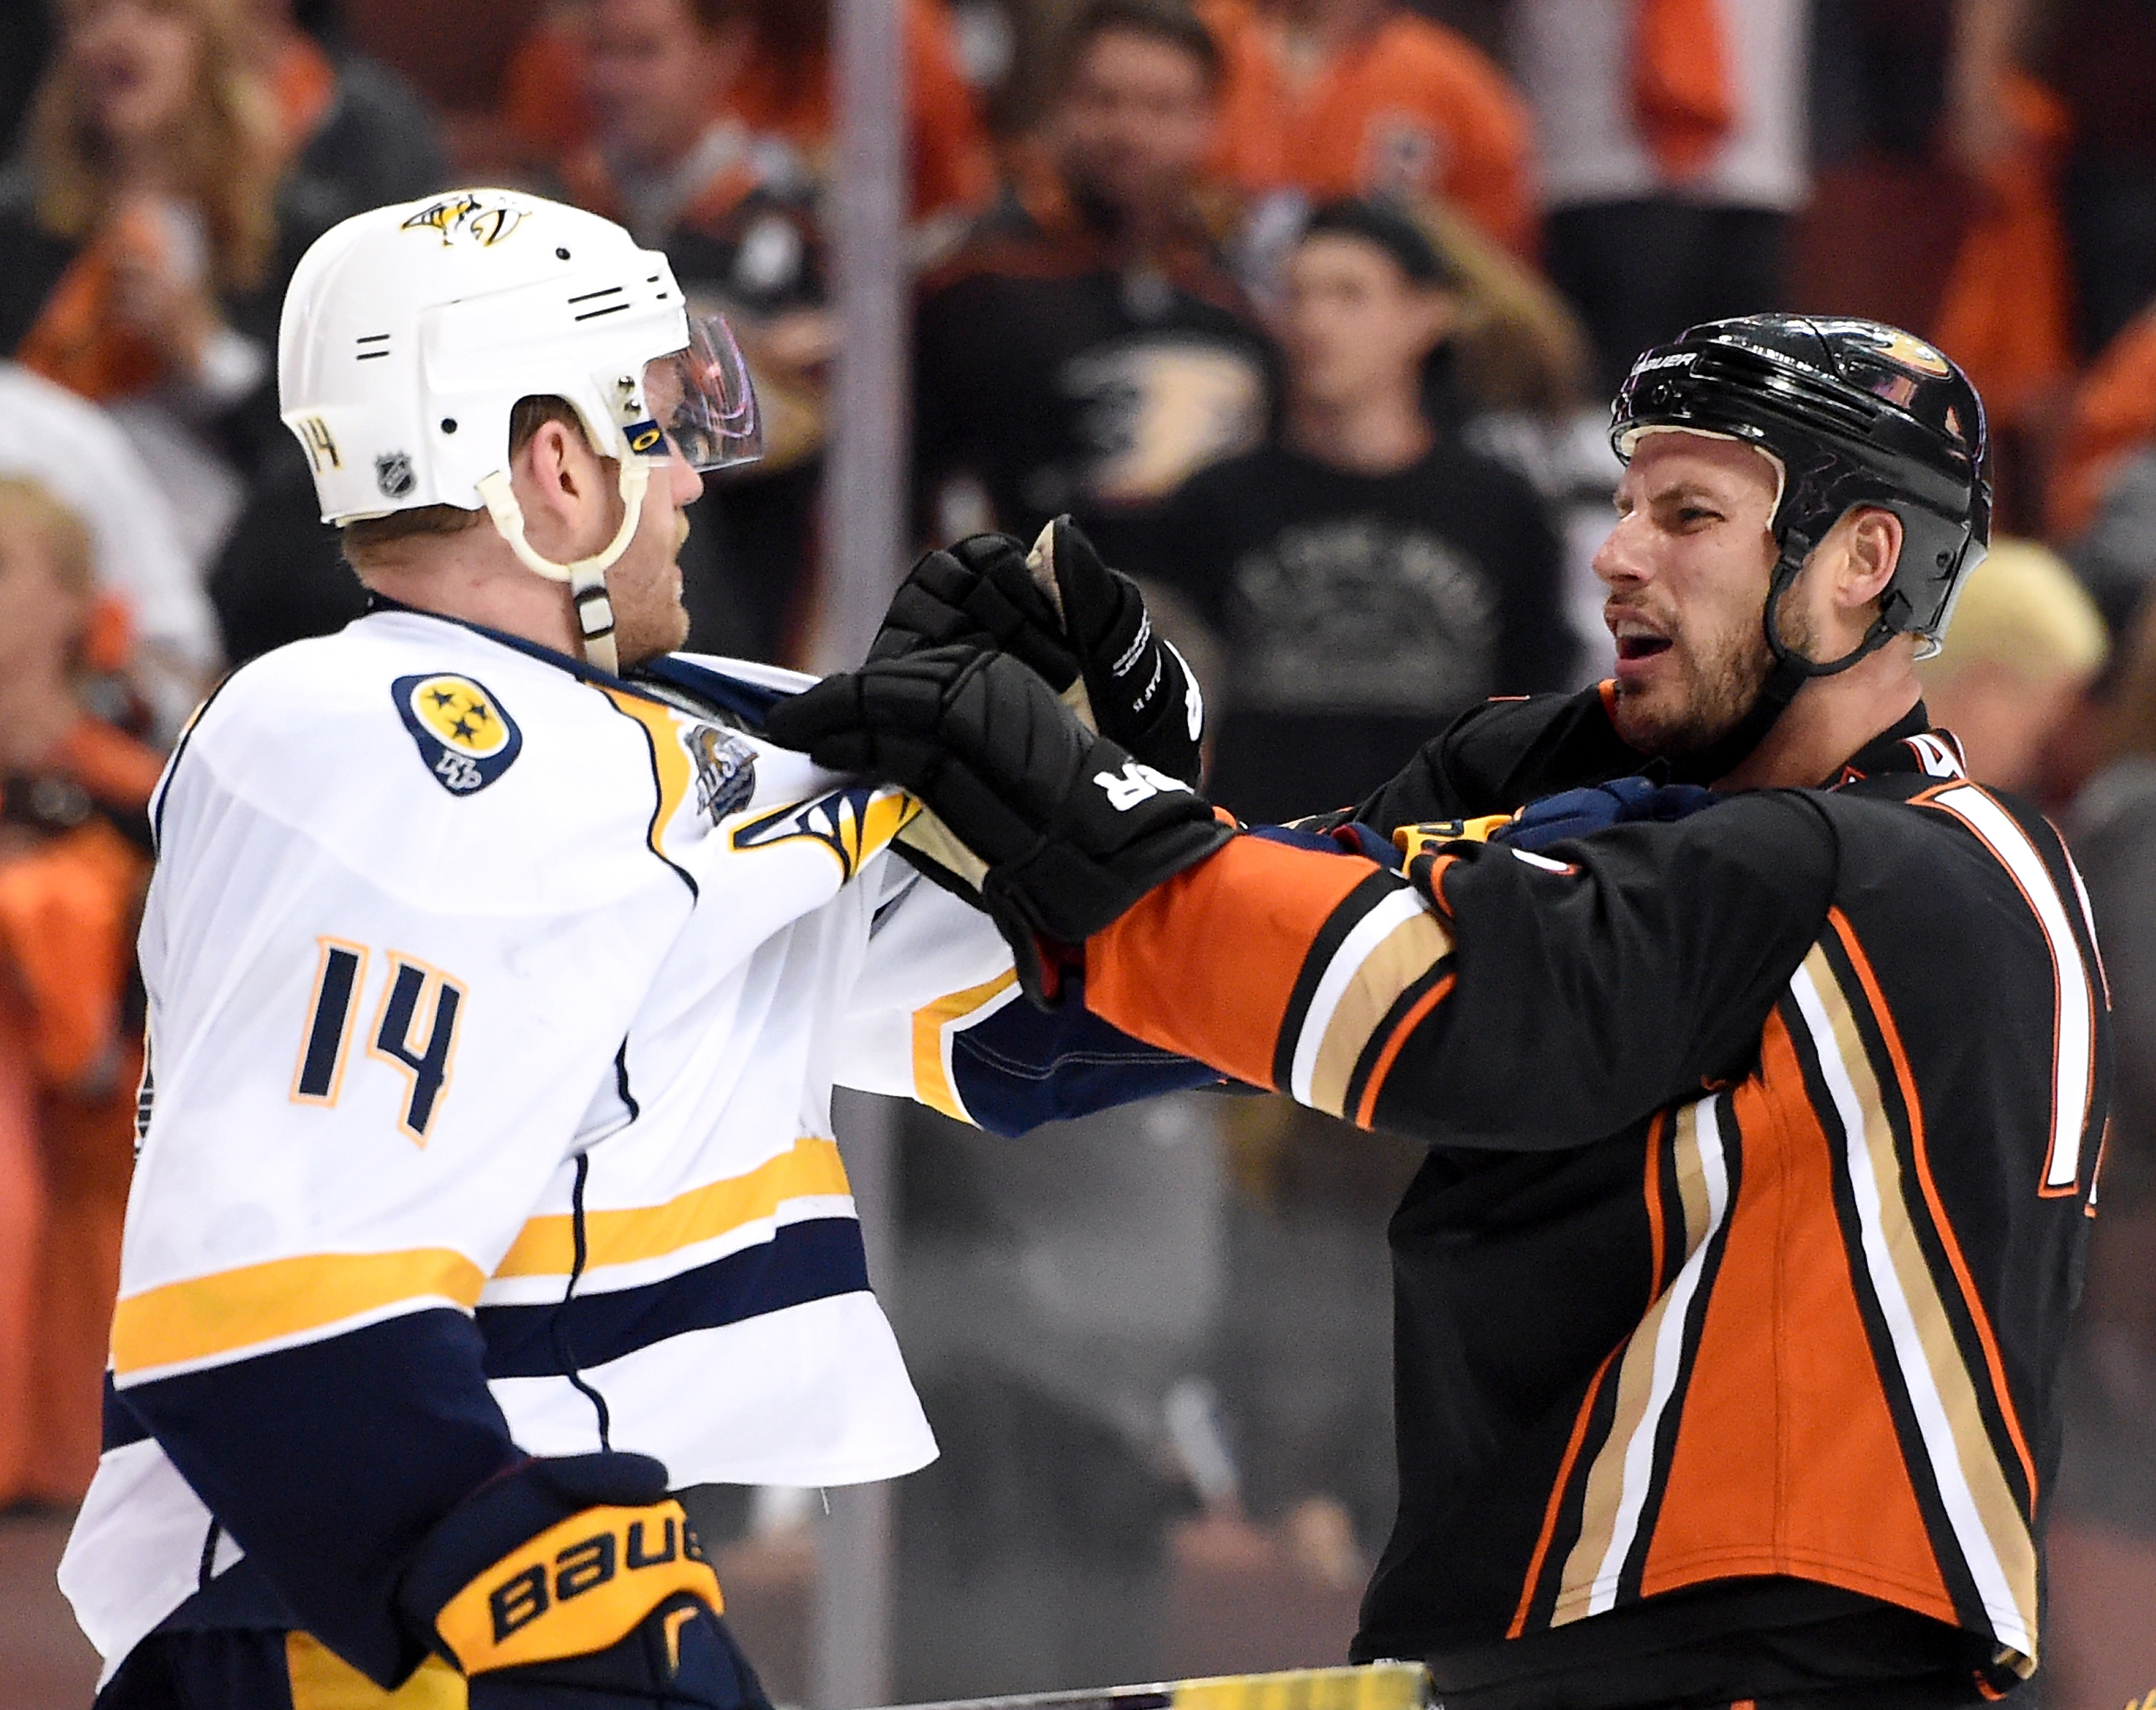 Never noticed how much Getzlaf looks like Lucic when he's whining...